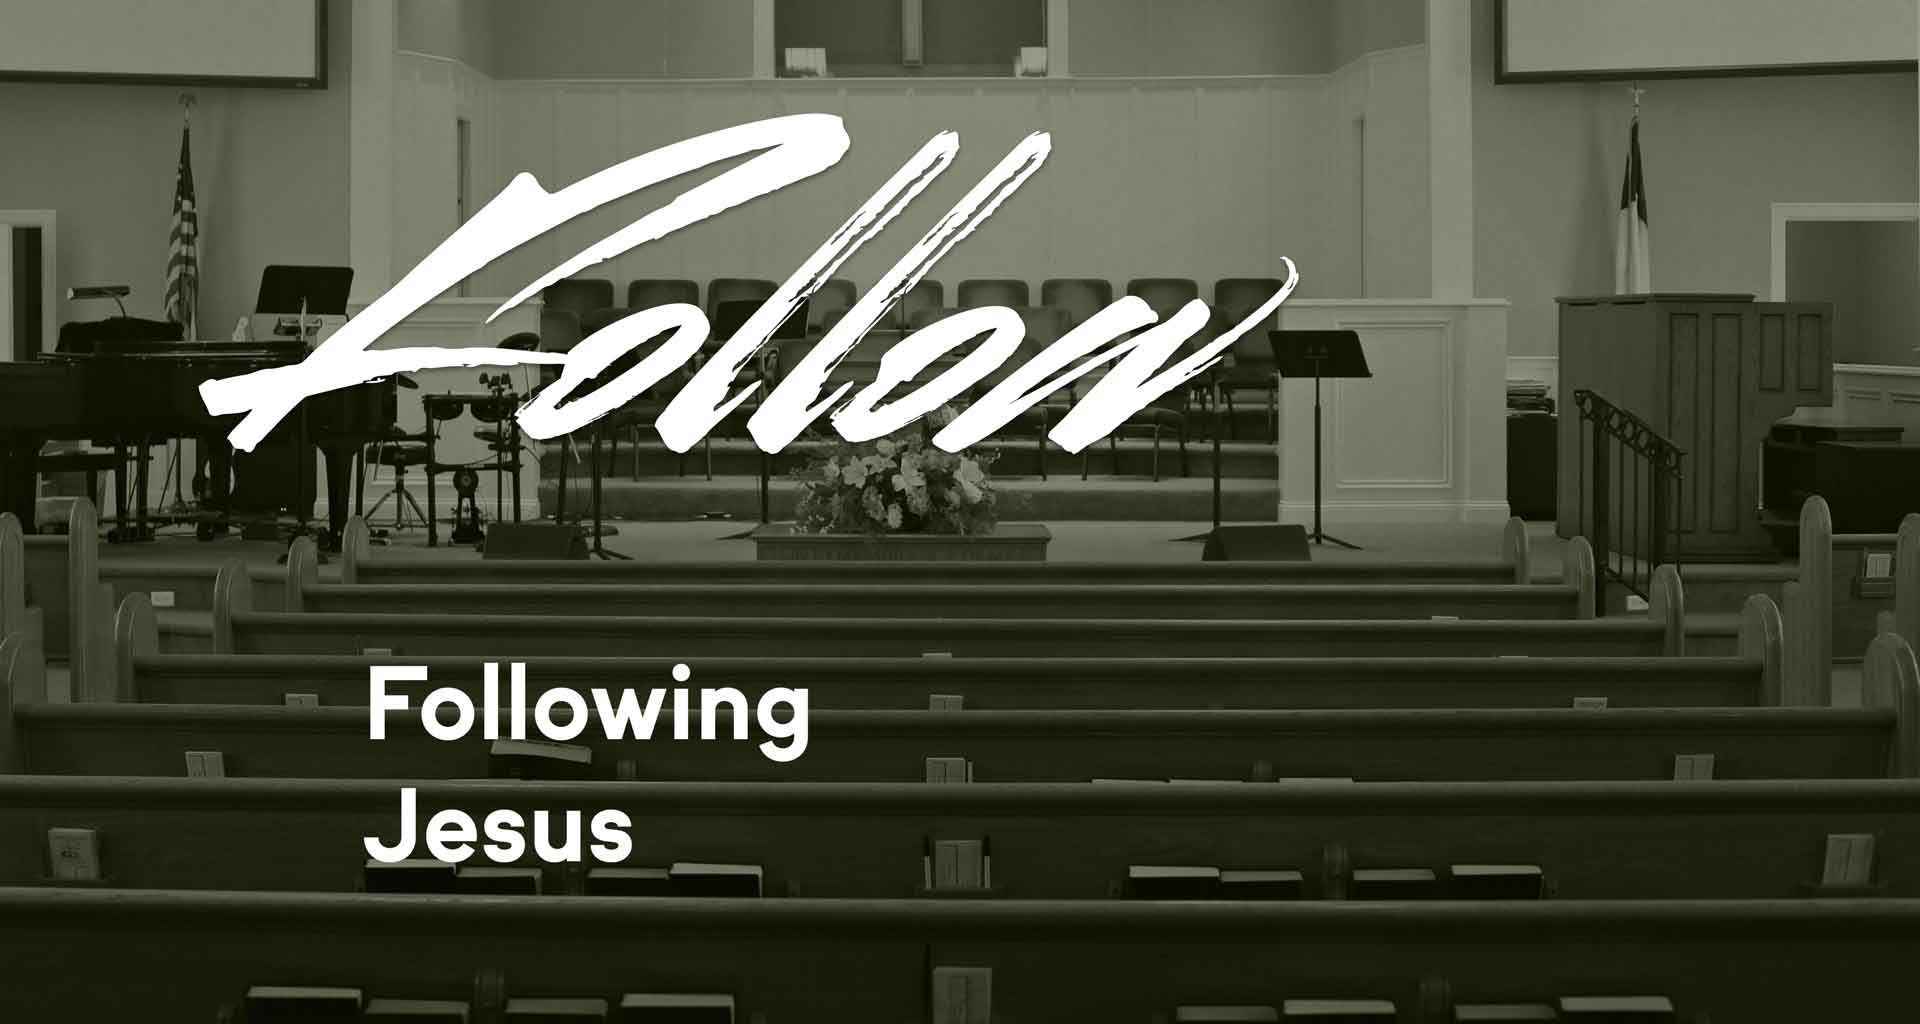 Follow: Following Jesus